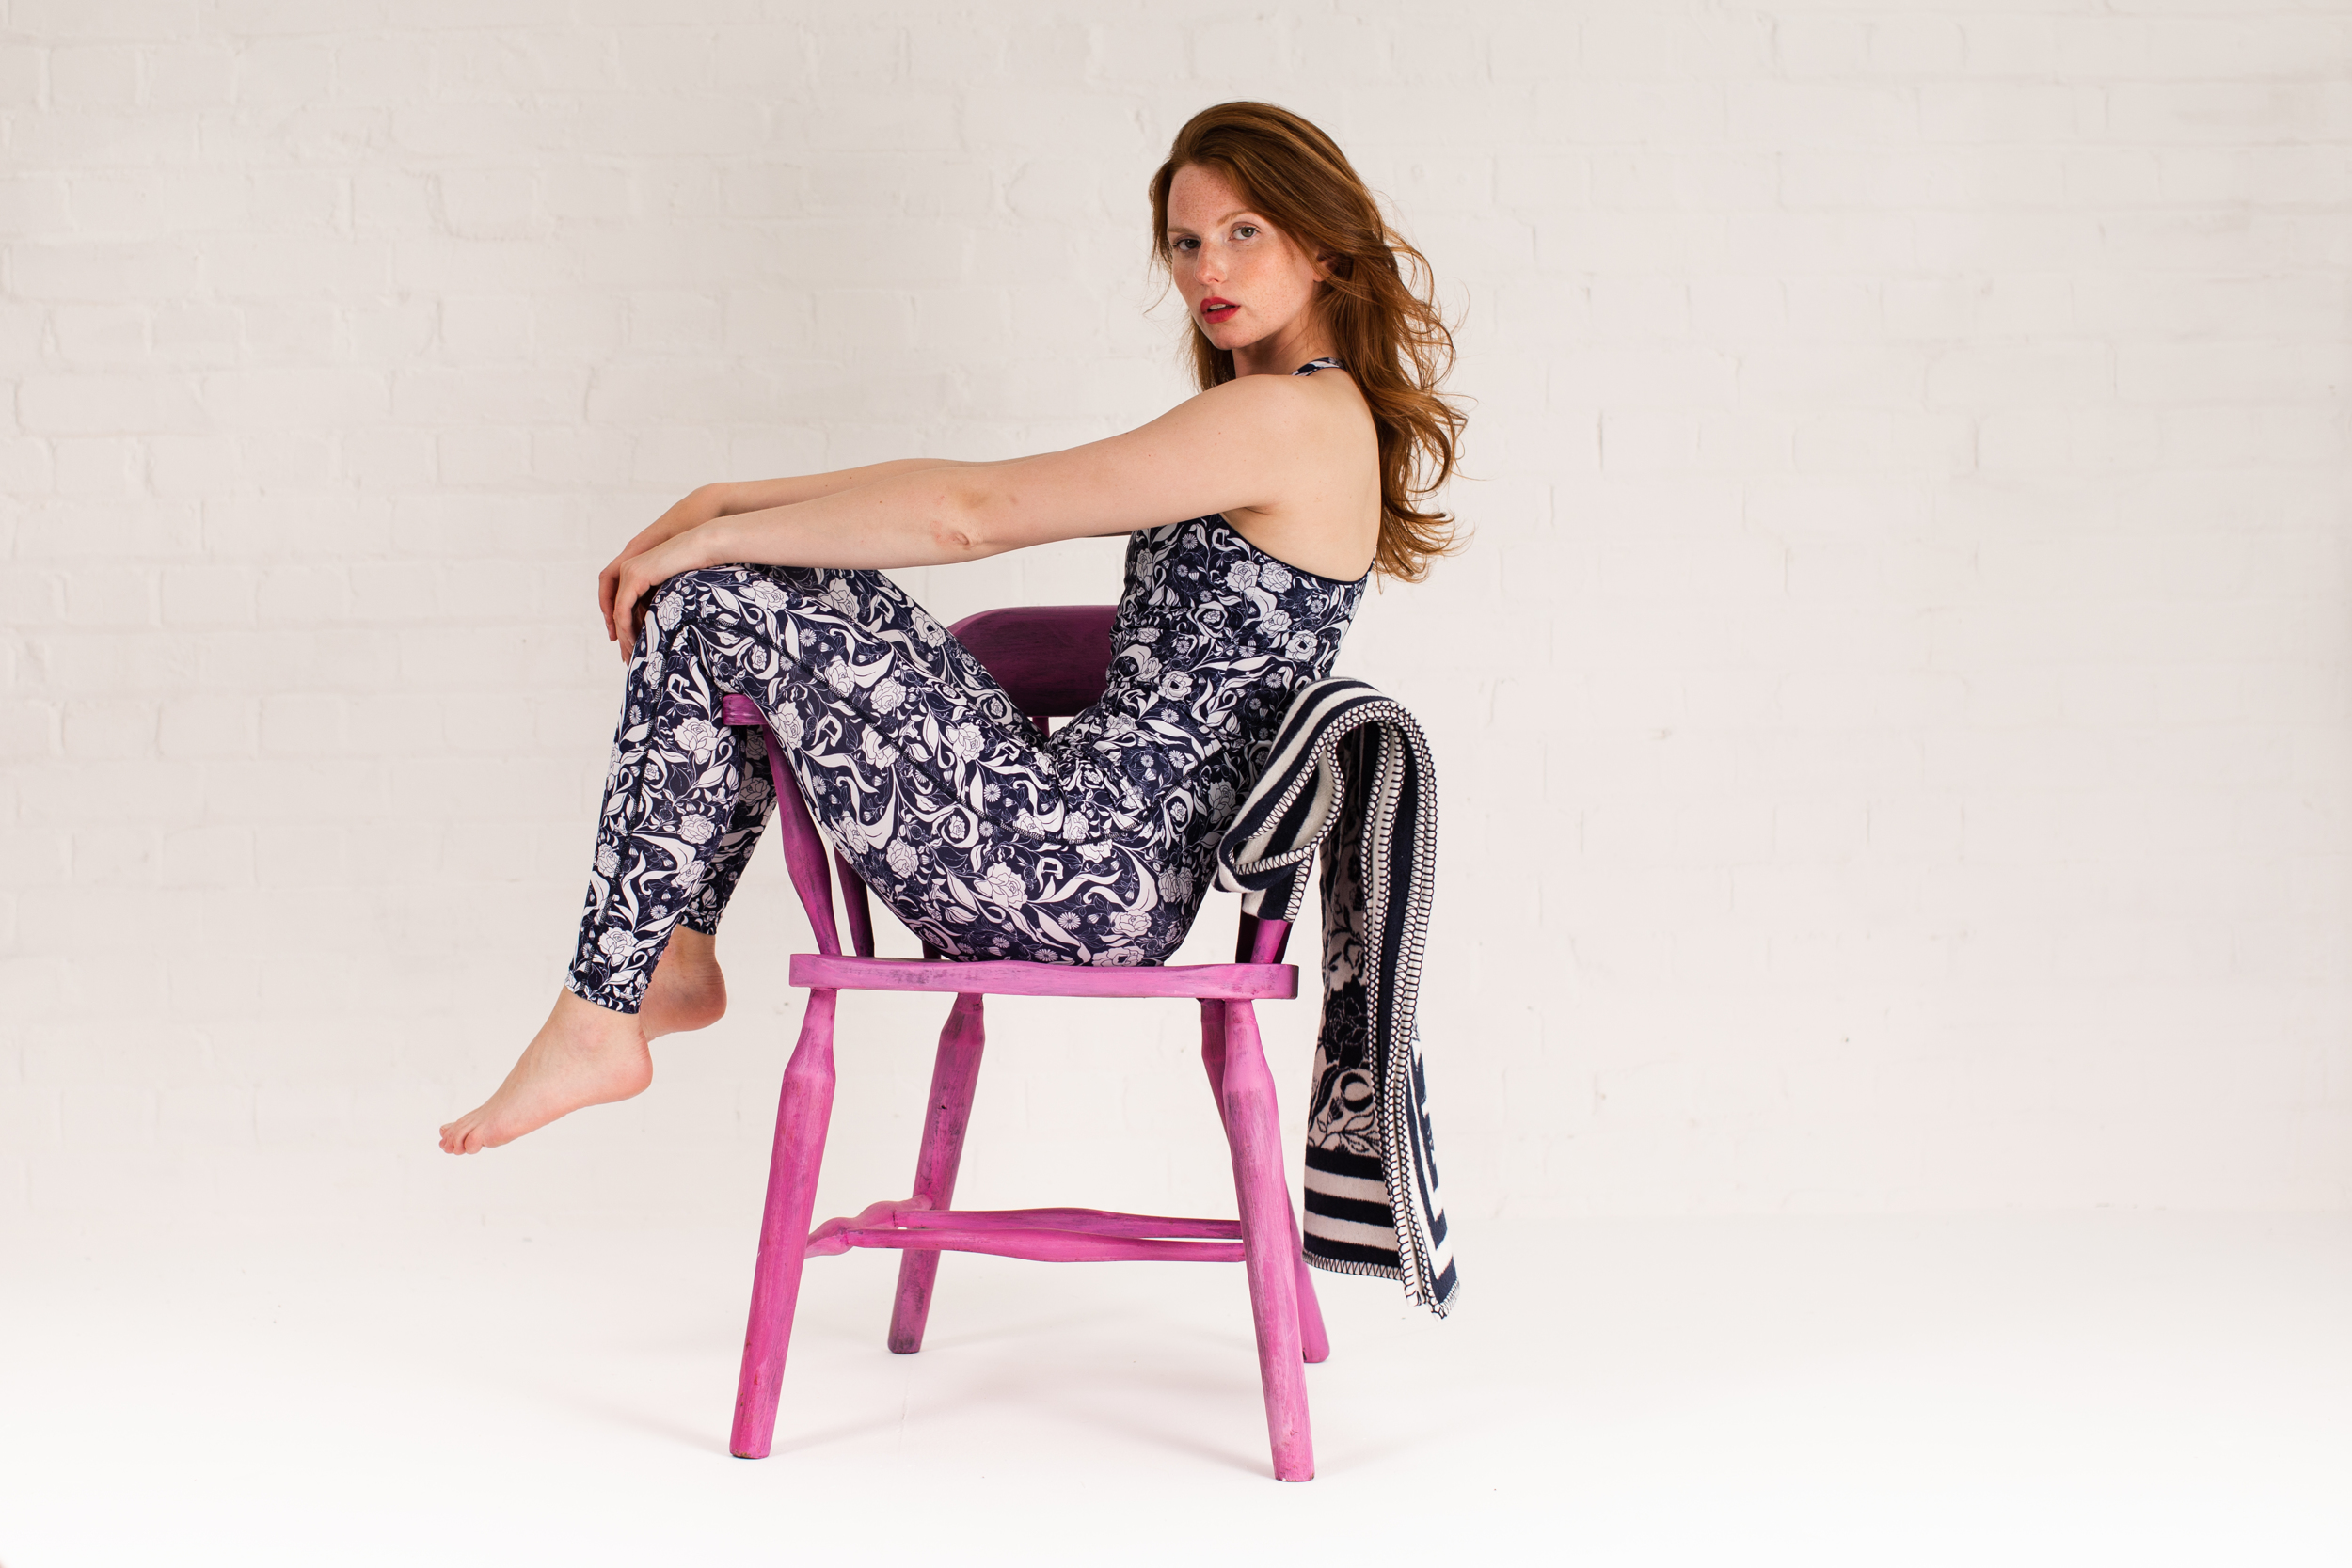 Recycled leggings and sport top navy floral